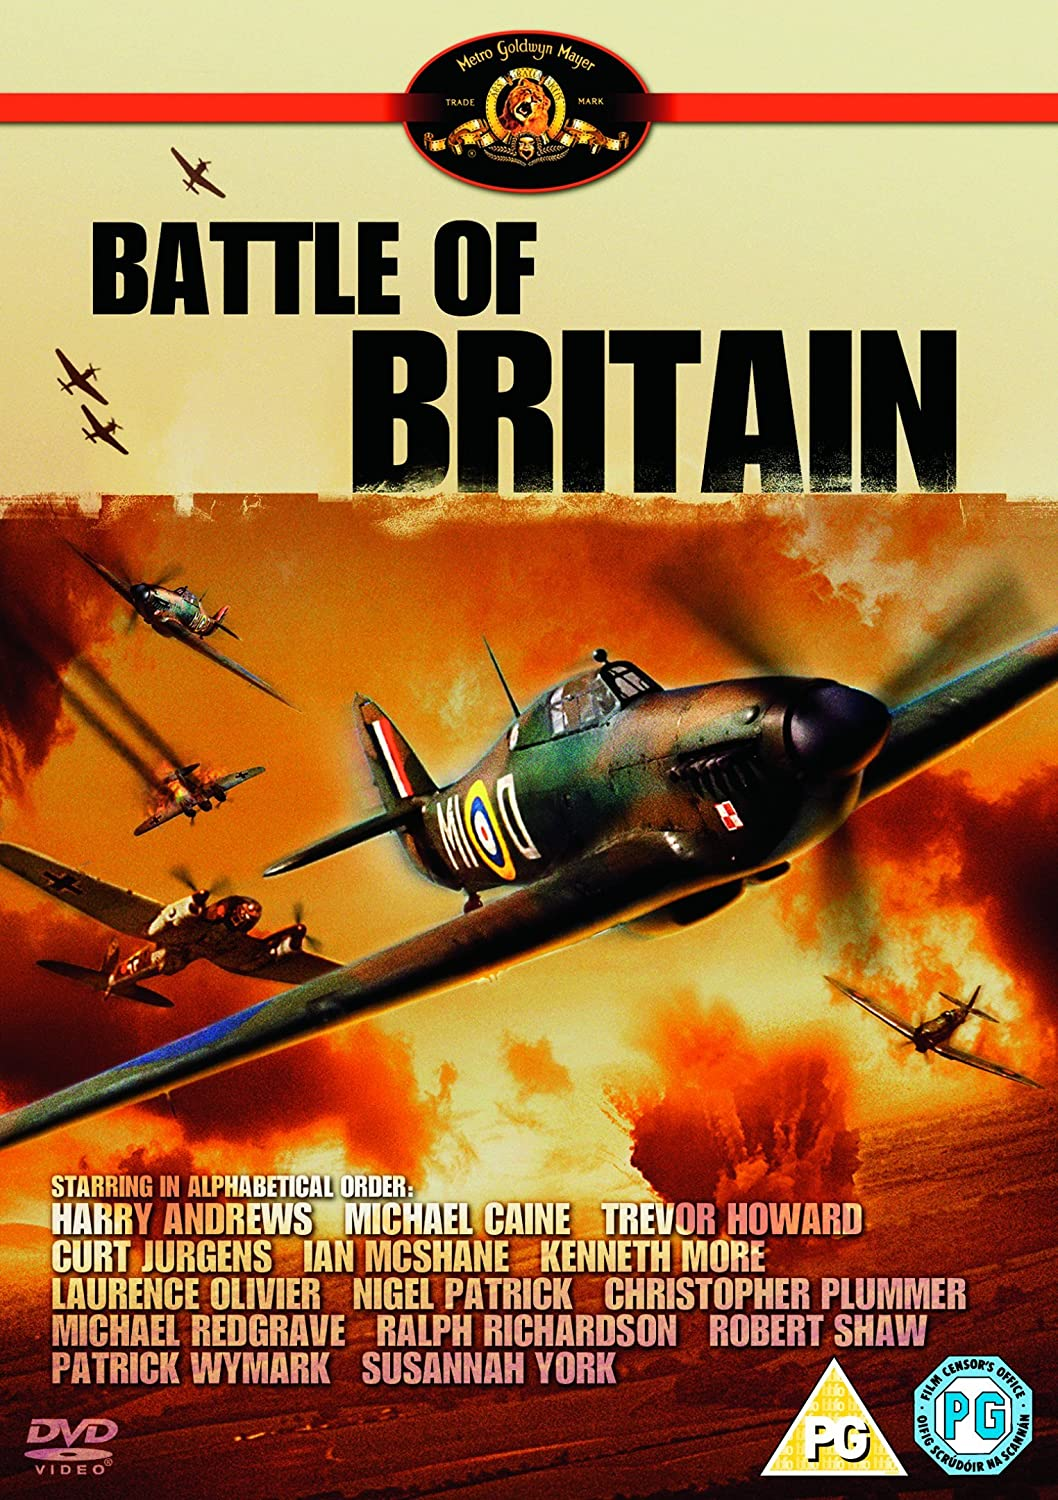 Battle Of Britain DVD [Reino Unido]: Amazon.es: Battle of Britain: Cine y Series TV